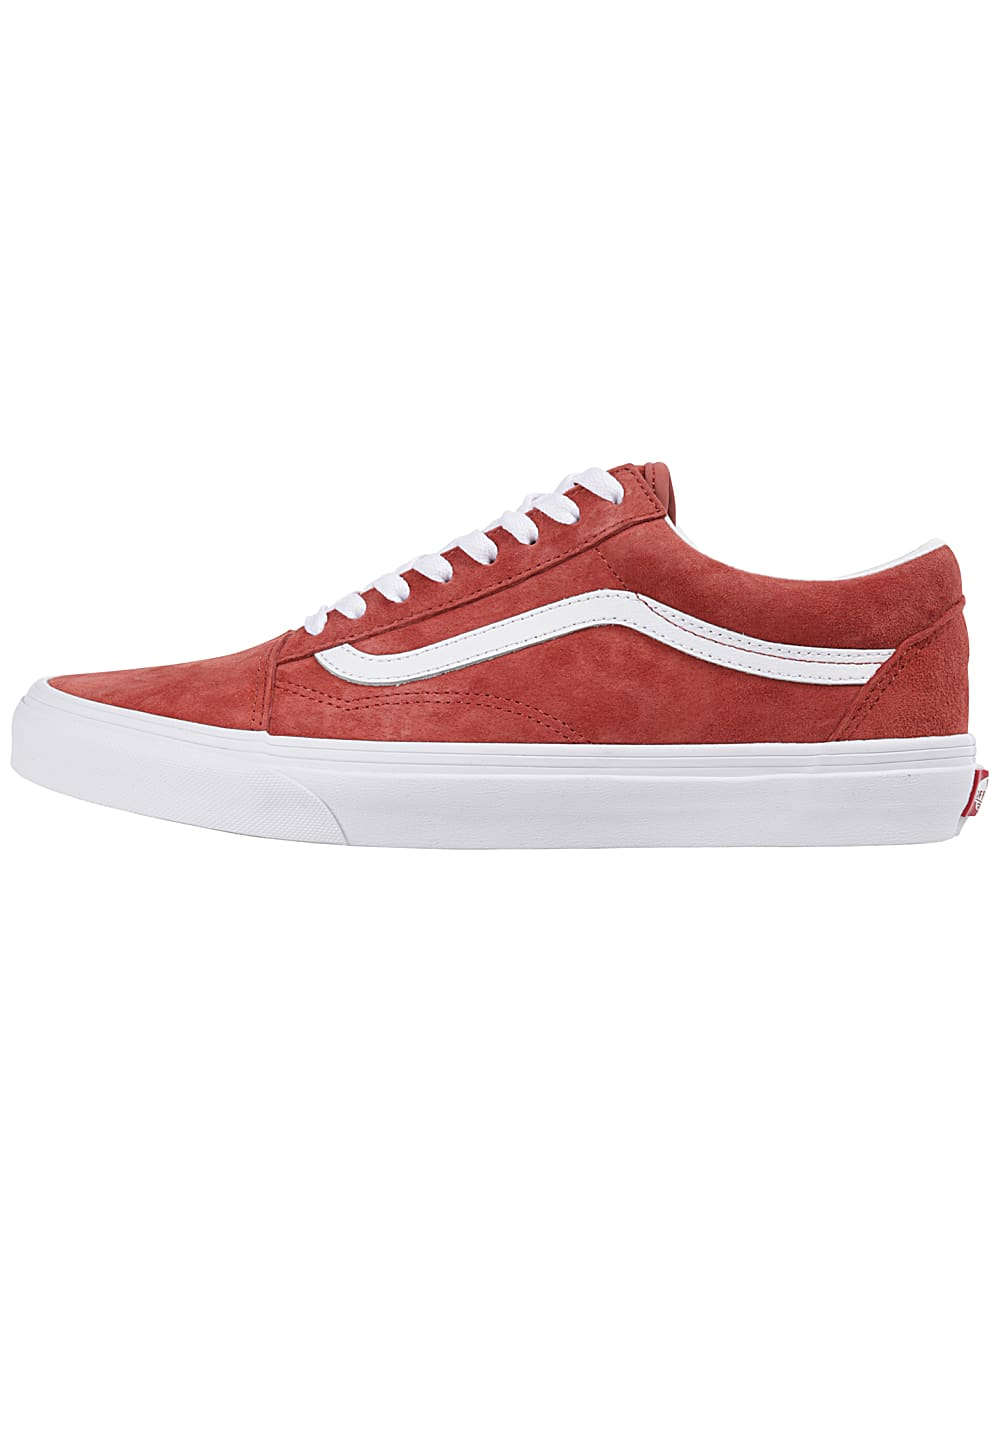 VANS Old Skool Sneaker für Herren Rot Planet Sports